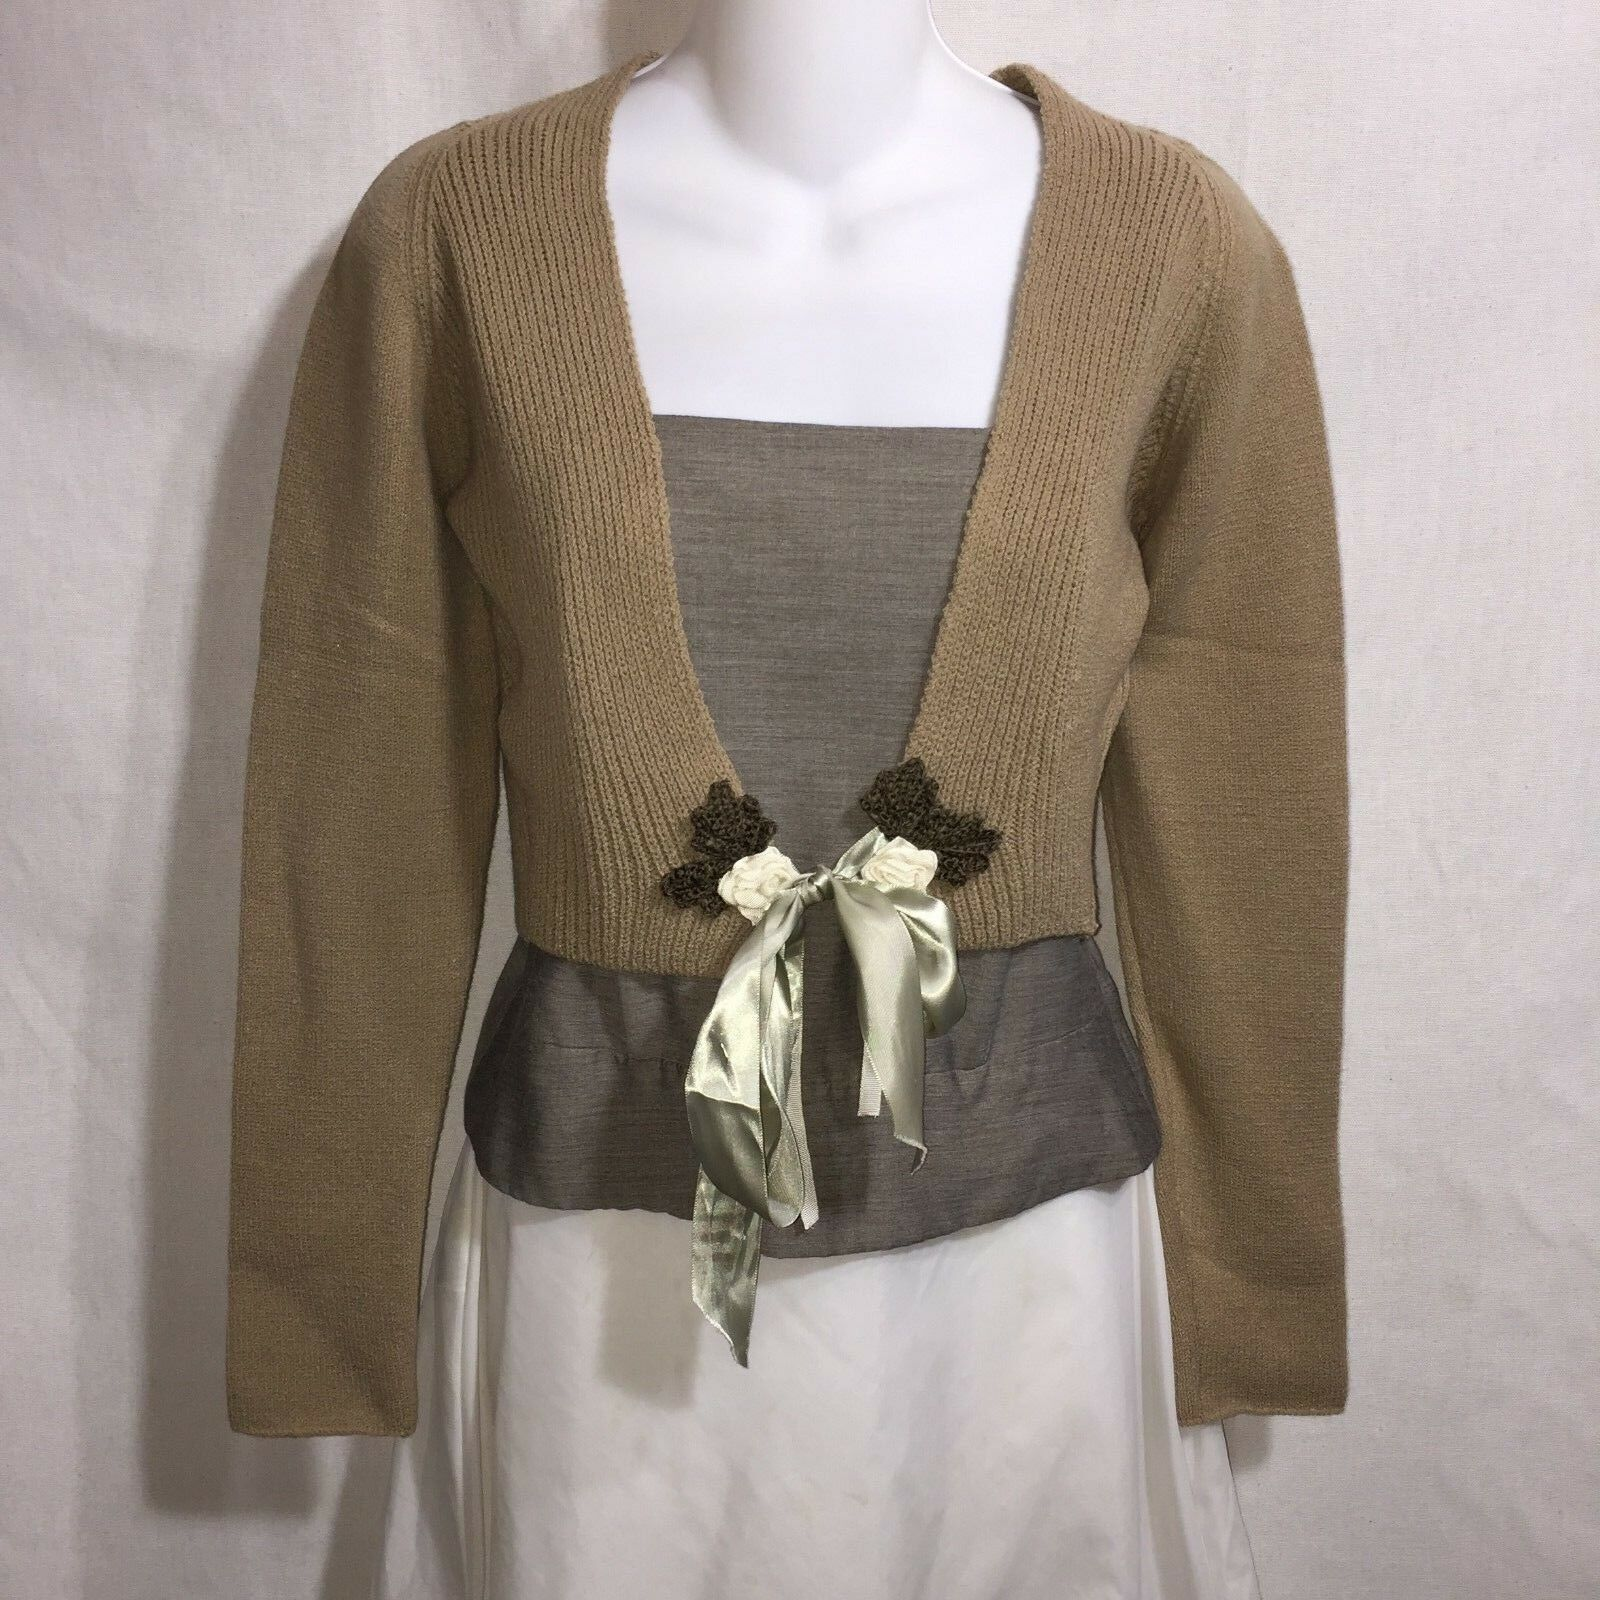 Neesh by DAR Flax J. Engelhart Soft Brown Cropped Tied Cardigan Sweater Shrug S